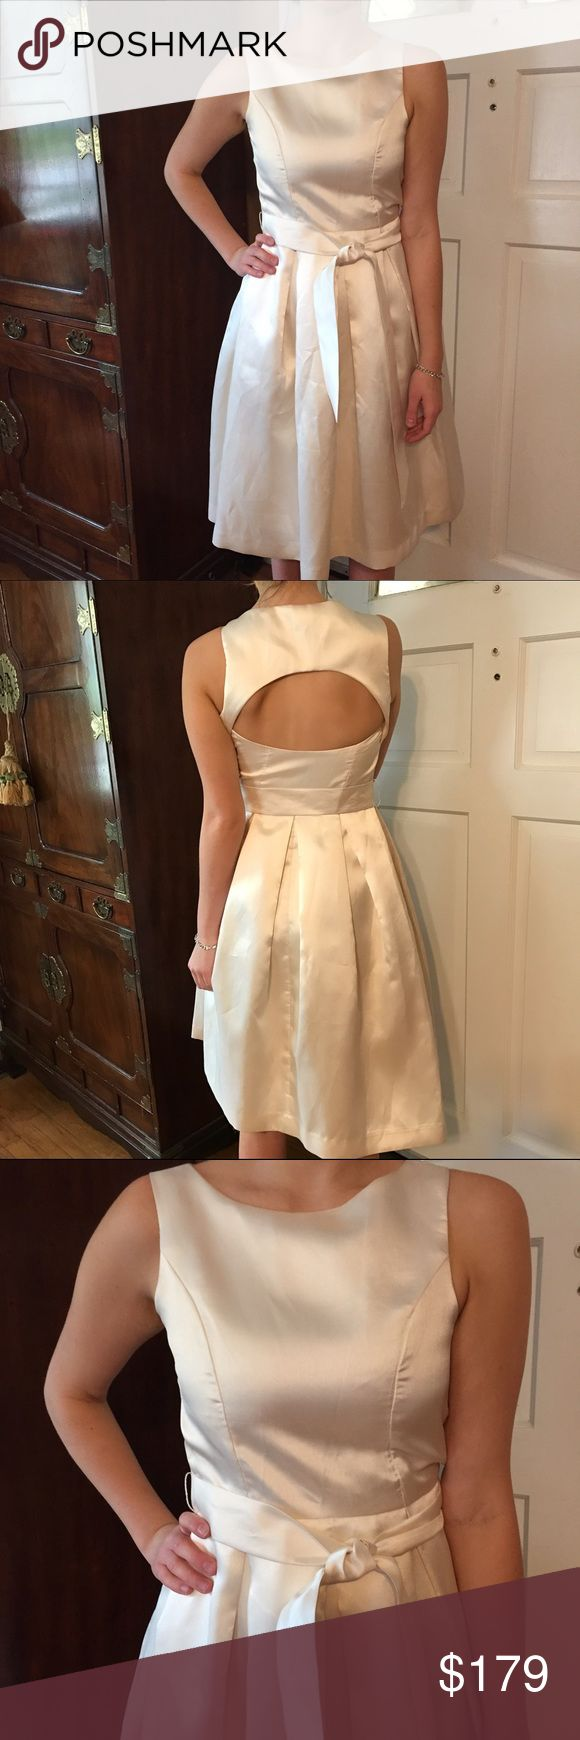 🎄Isaac Mizrahi Cream Cocktail Dress. Size 0 Isaac Mizrahi New York Cream Cocktail Dress with cutout back. Size 2. Bust area is on the smaller side. Bust: 14 inches measured flat across front. Waist: 13 inches measured flat across the front. A-line skirt is 42 inches long. Self tie. Side inside zipper with hook at the top.  Polyester taffeta type material. Perfect for your holiday party.   Very elegant. Isaac Mizrahi Dresses Midi